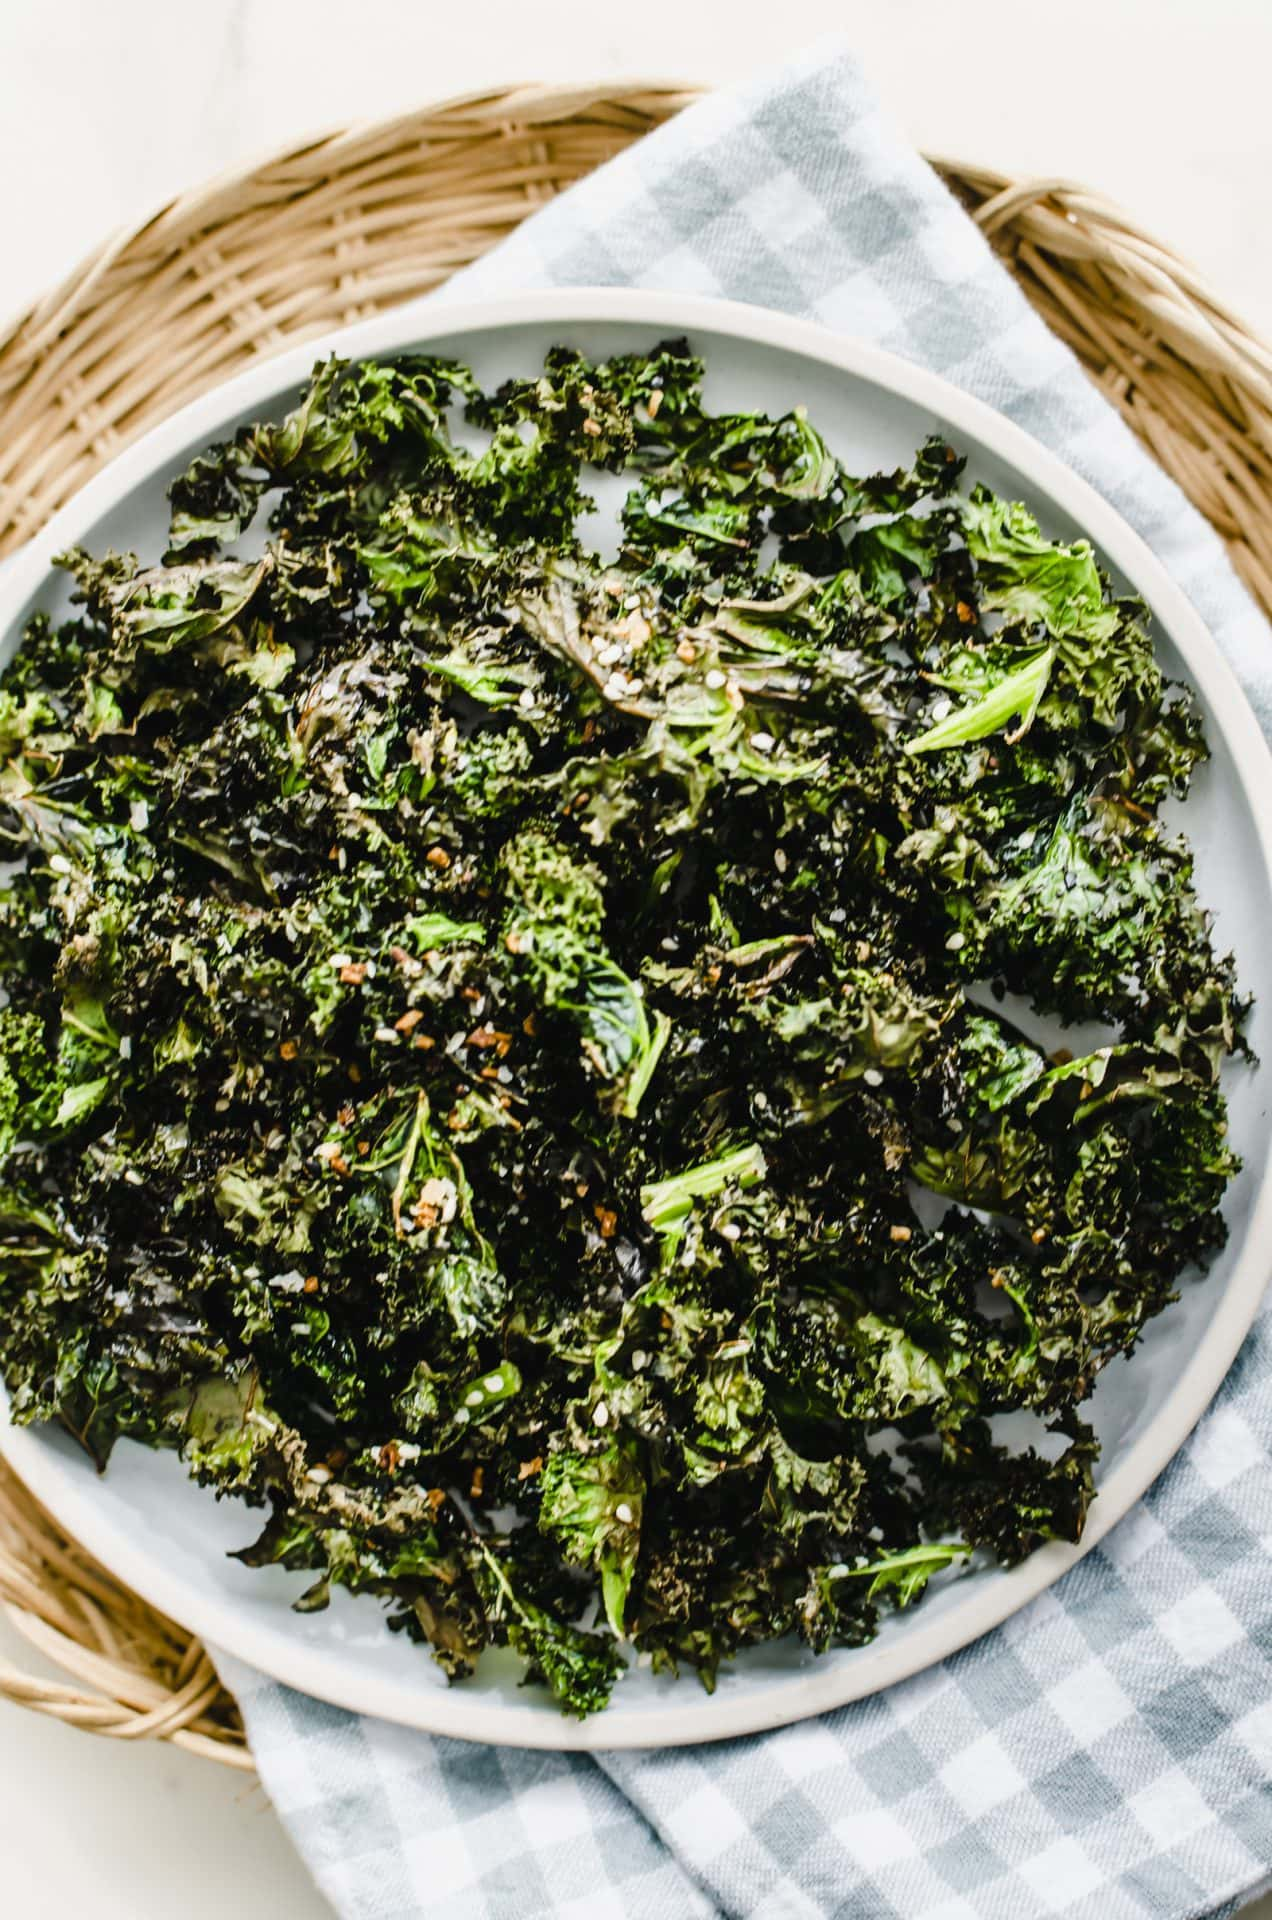 A blue plate of kale chips on a gingham dish towel.